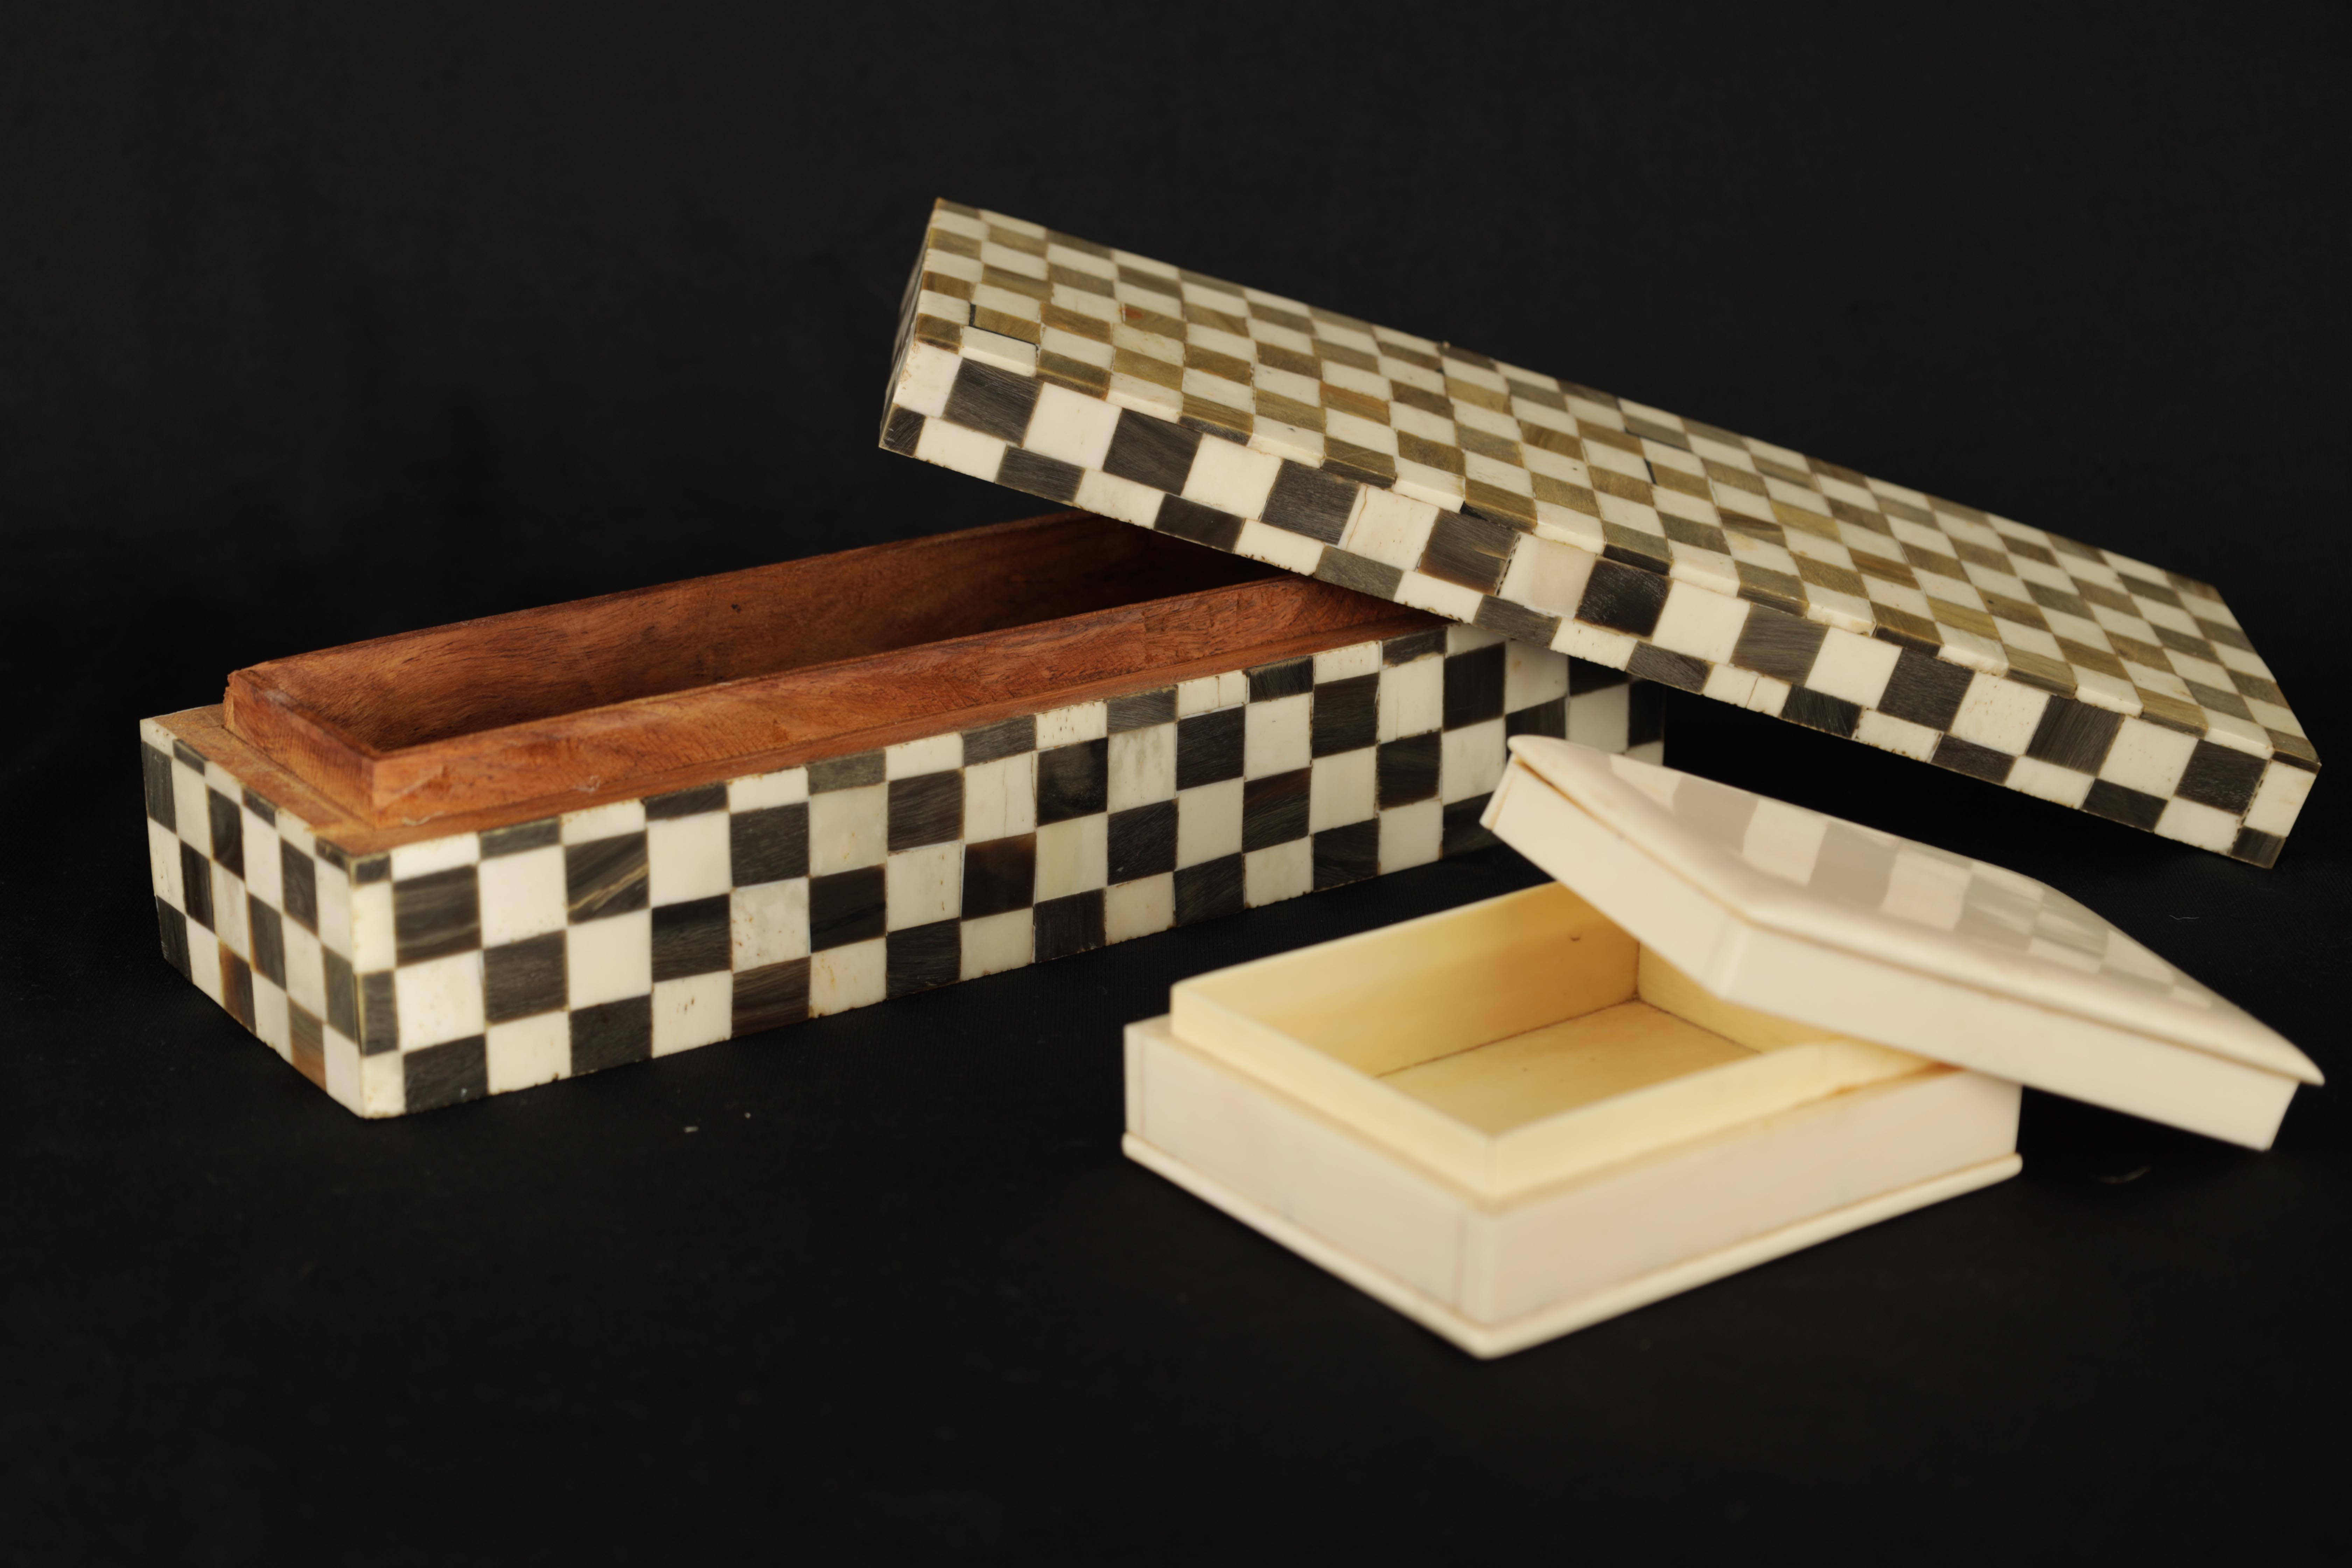 AN ANGLO INDIAN CHEQUERED BALINE AND BONE INLAID HARDWOOD BOX 27cm wide 9cm deep 7cm high TOGETHER - Image 2 of 5